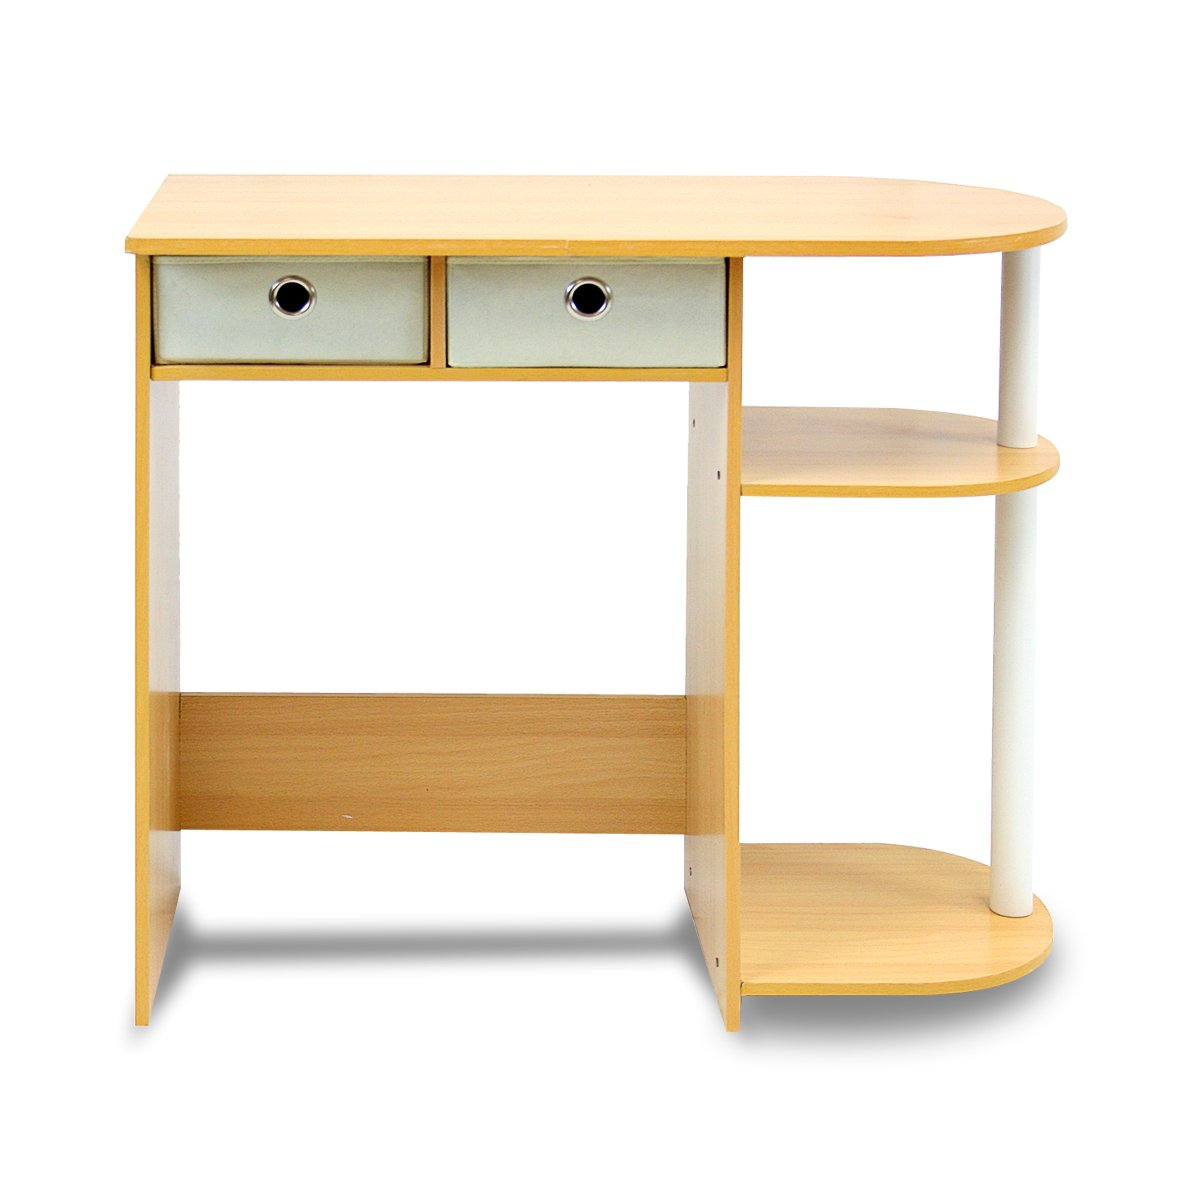 Furinno 11193BE/WH/IV Go Green Home Computer Desk/Table, Beech/Ivory/White by Furinno